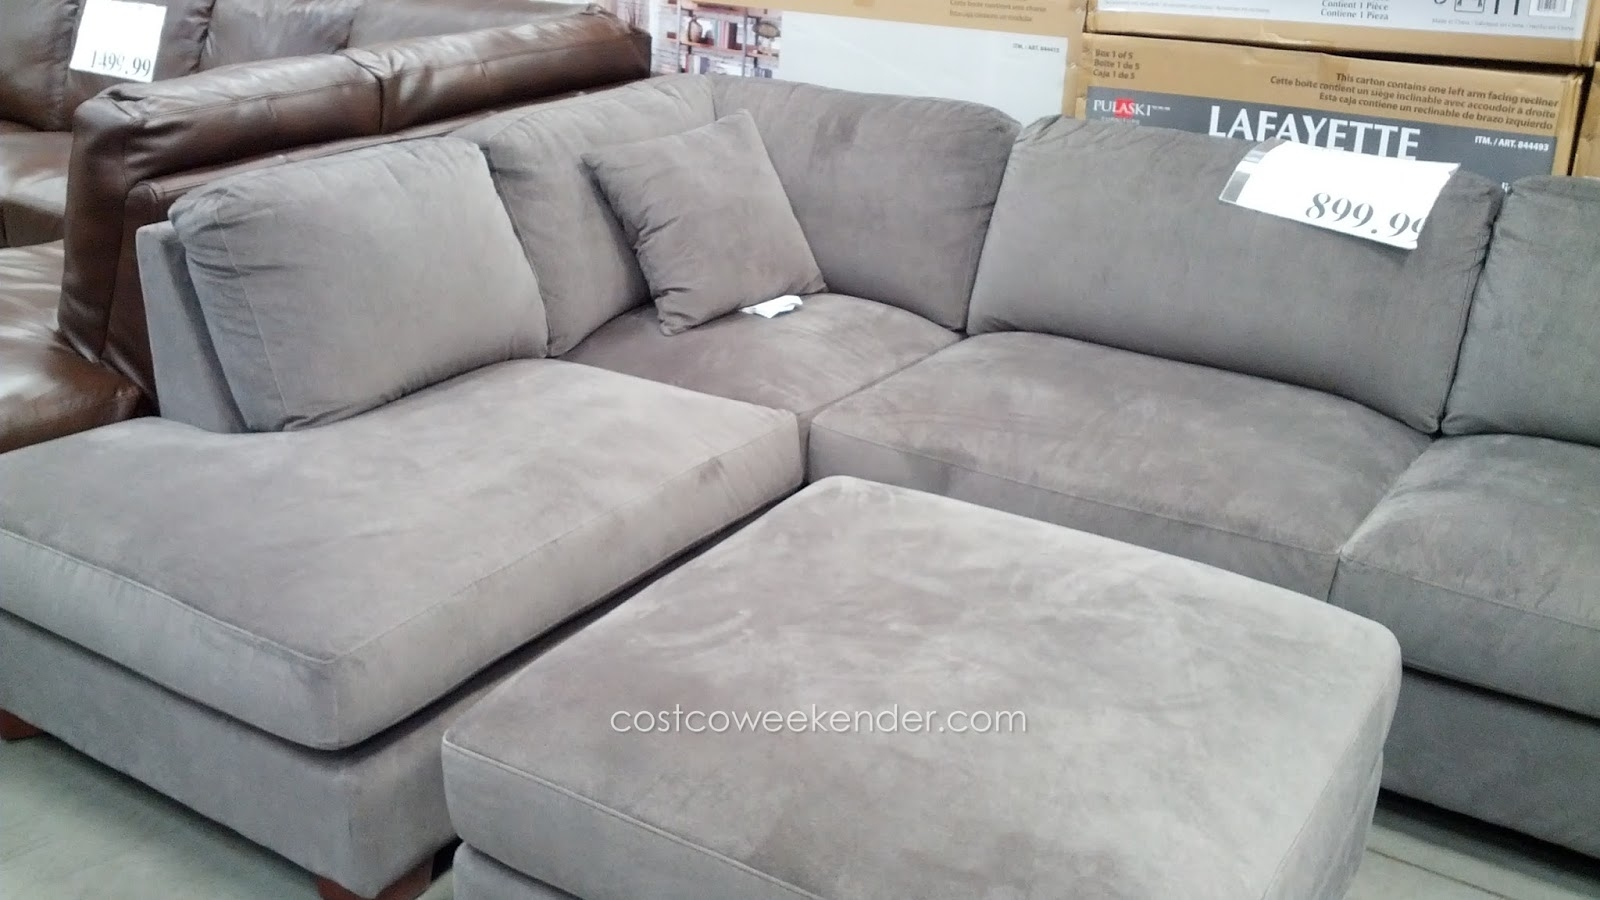 Emerald Home Furnishings Bianca 3 Piece Sectional Set | Costco Weekender With Cohen Down 2 Piece Sectionals (View 19 of 25)